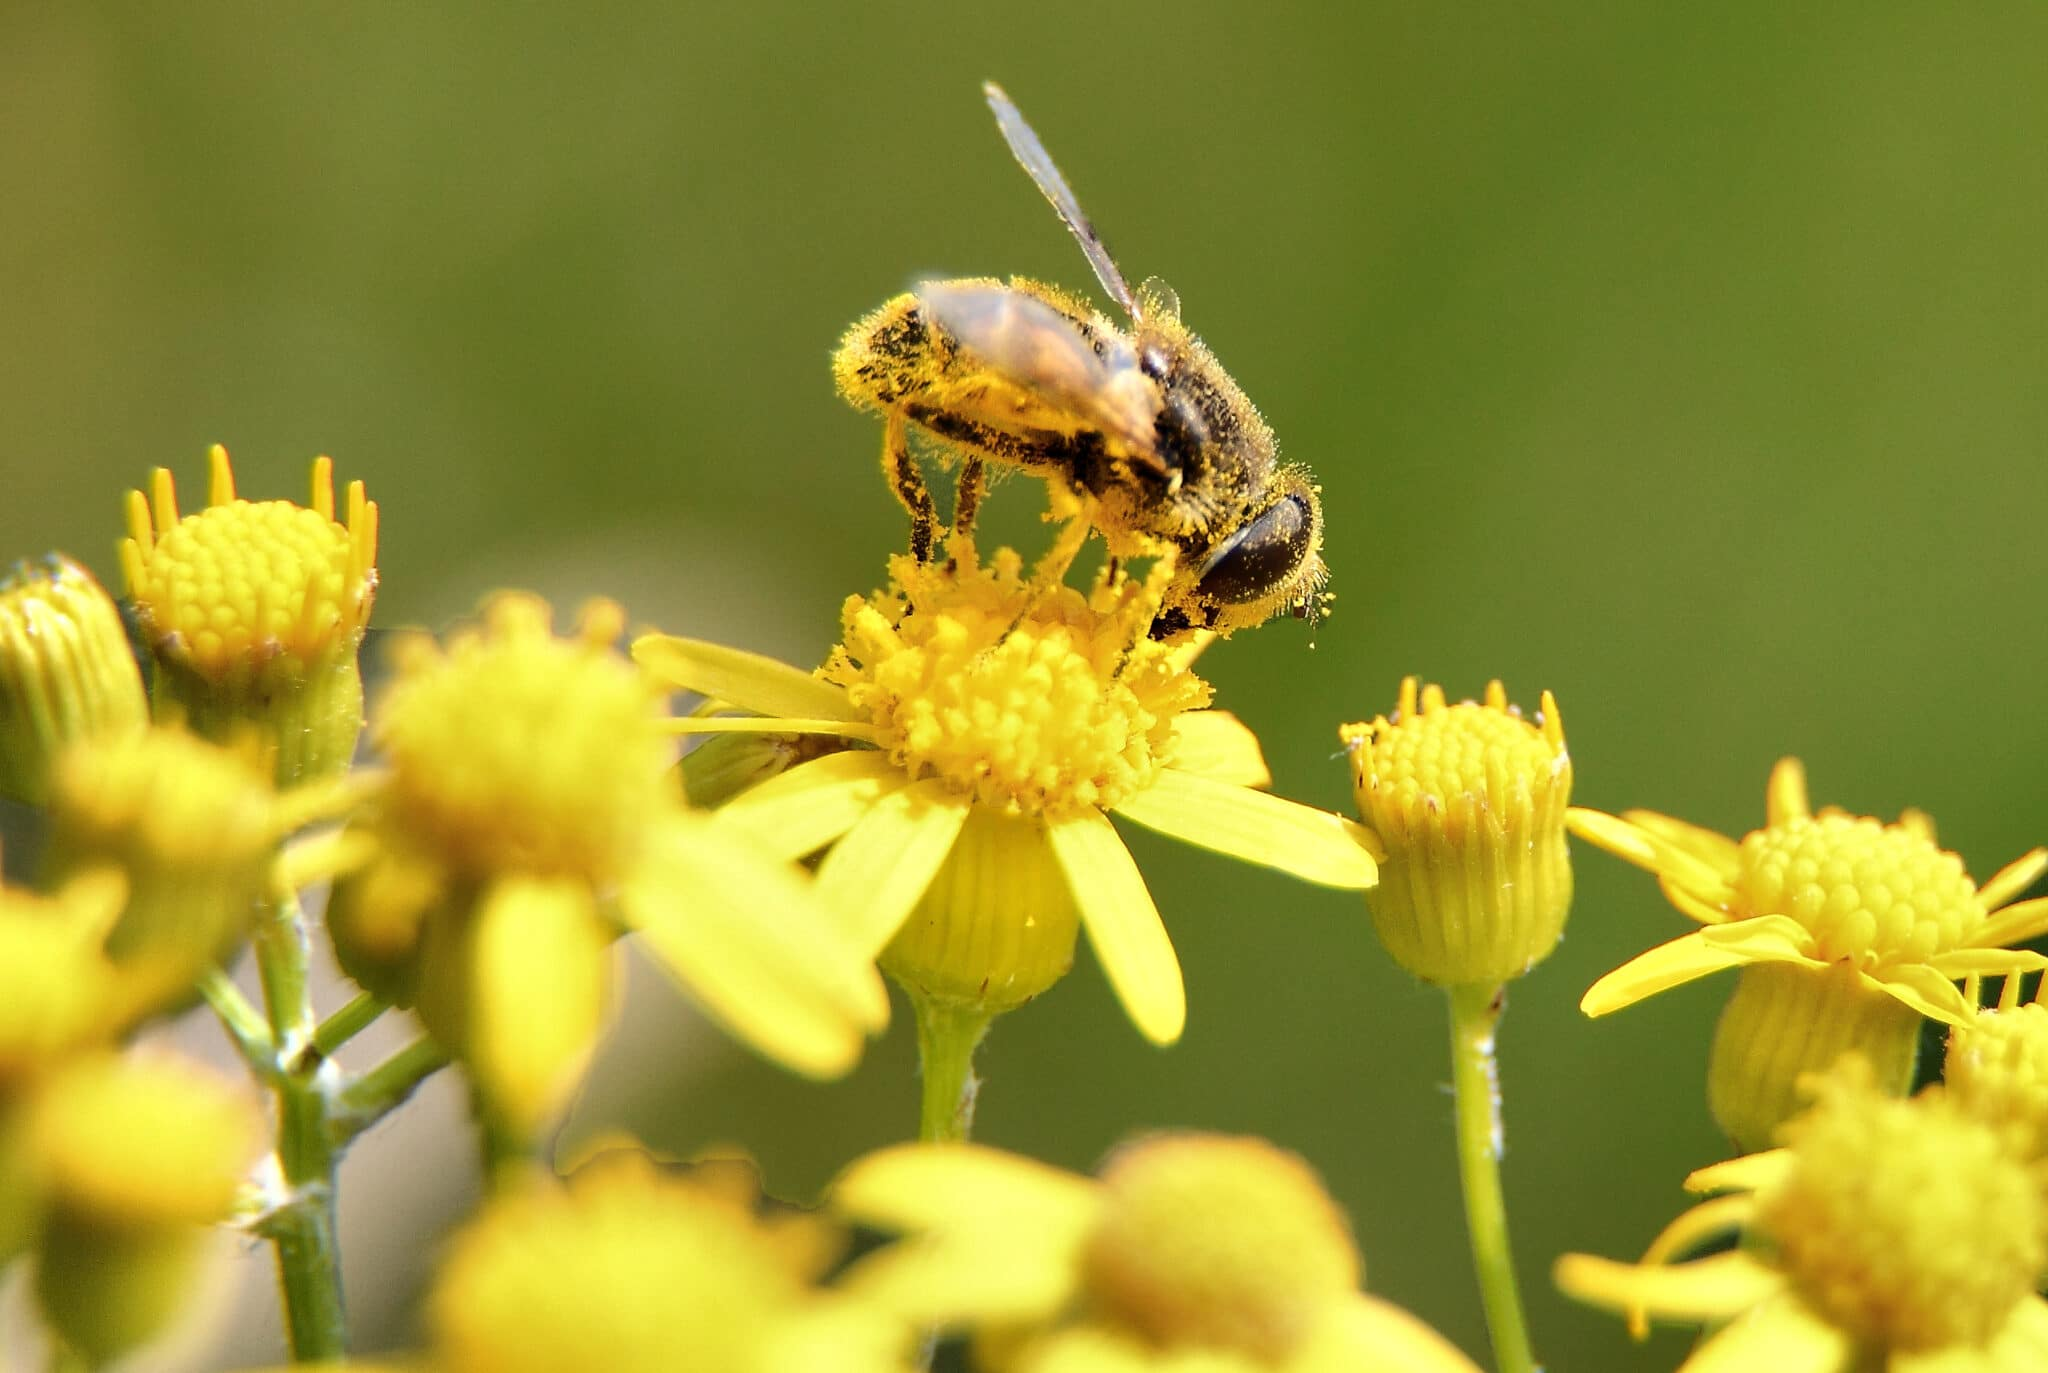 Bee collecting pollen, a major allergen